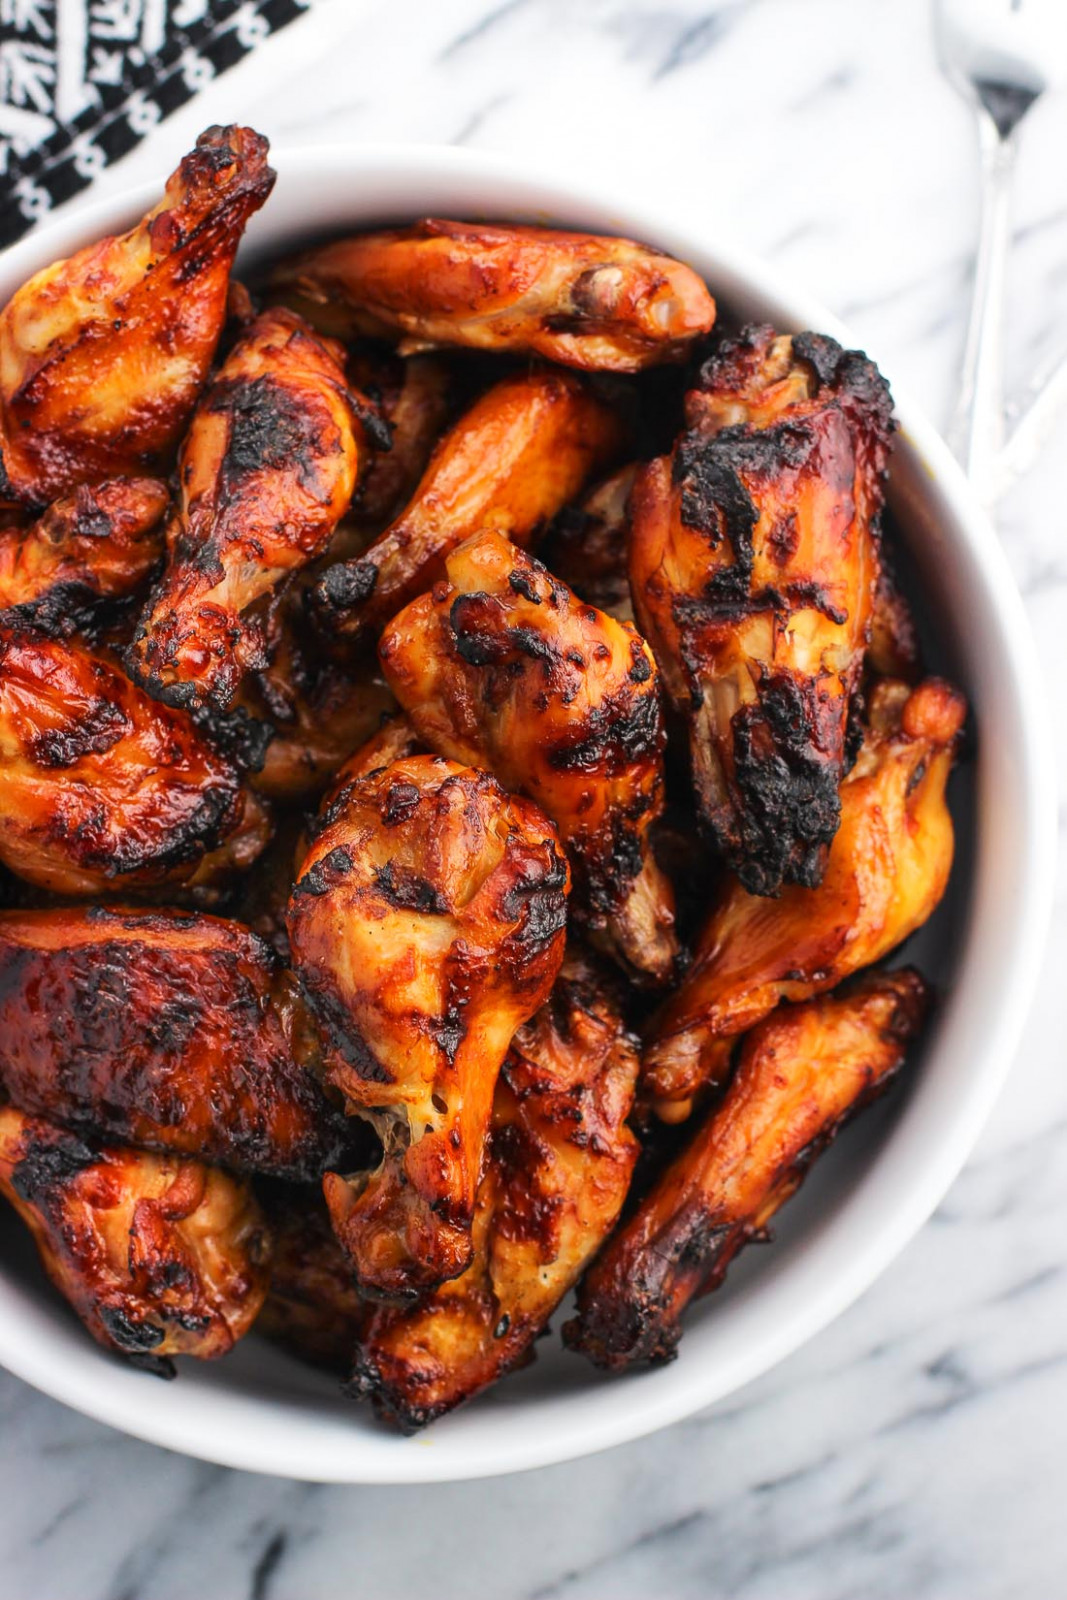 Grilled Spicy Soy Chicken Wings - Recipes Grilled Chicken Wings